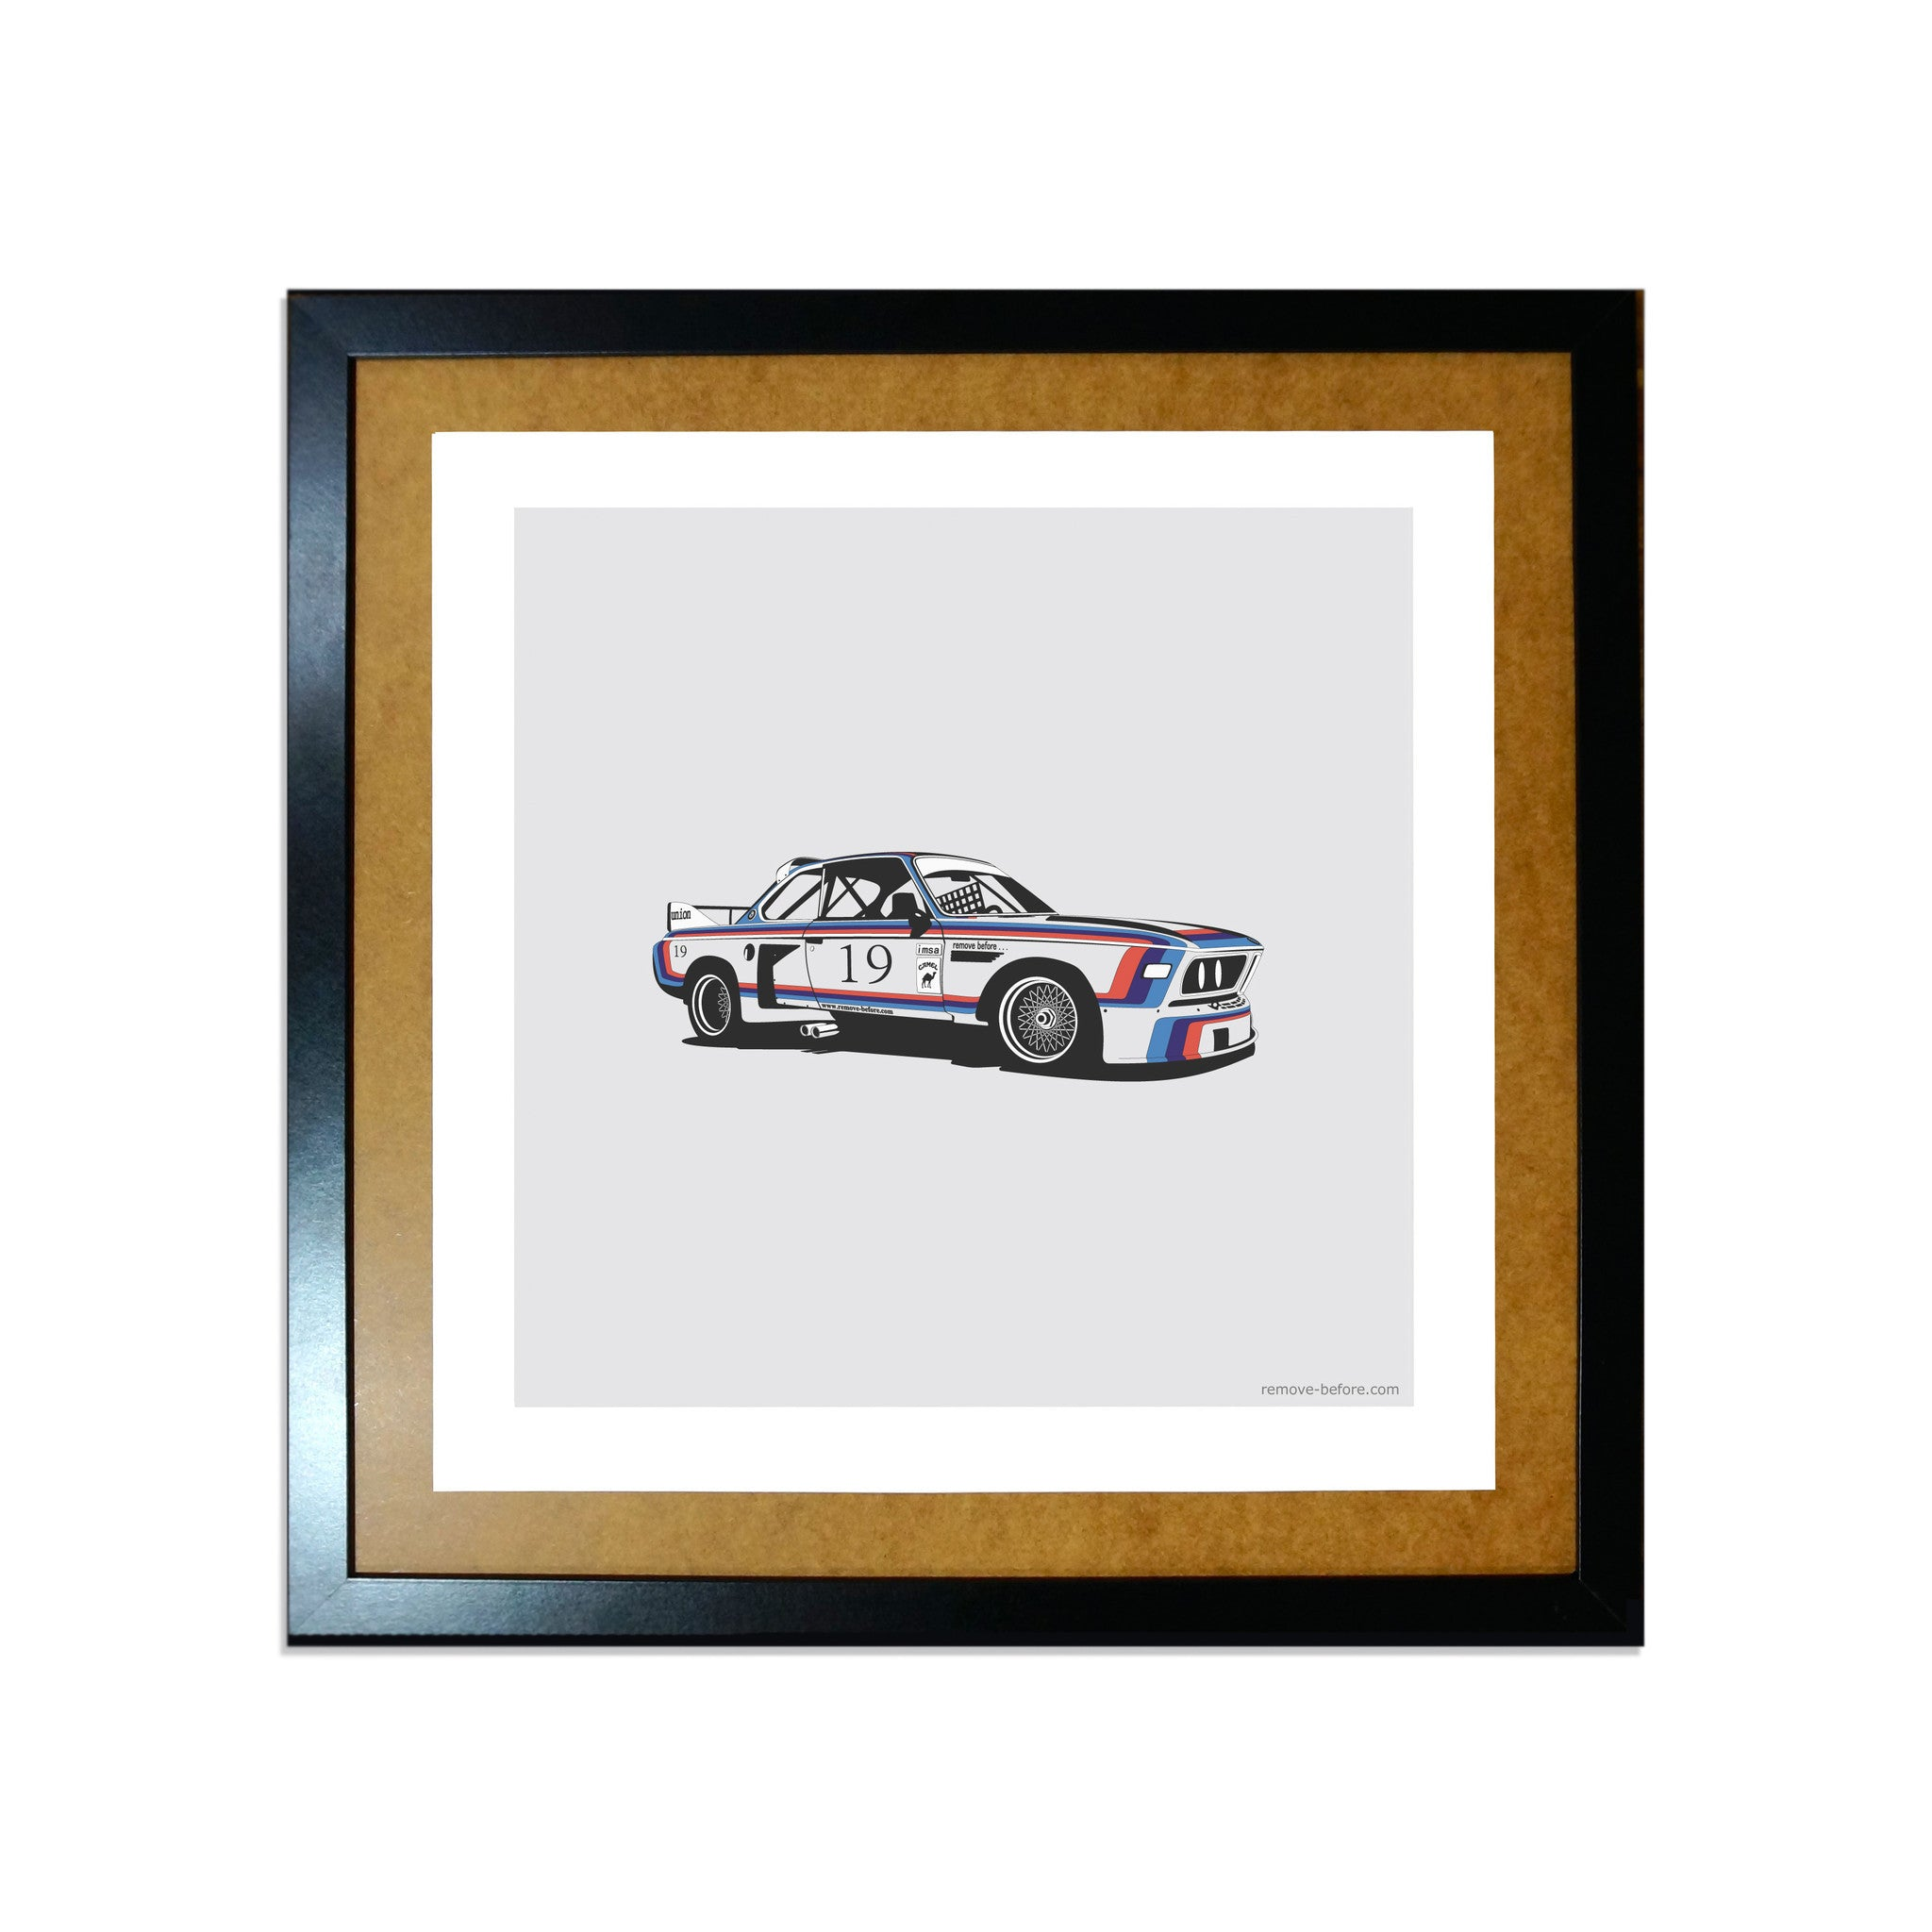 Remove-Before Limited Edition Classic Car Print - BMW CSL Car Artwork